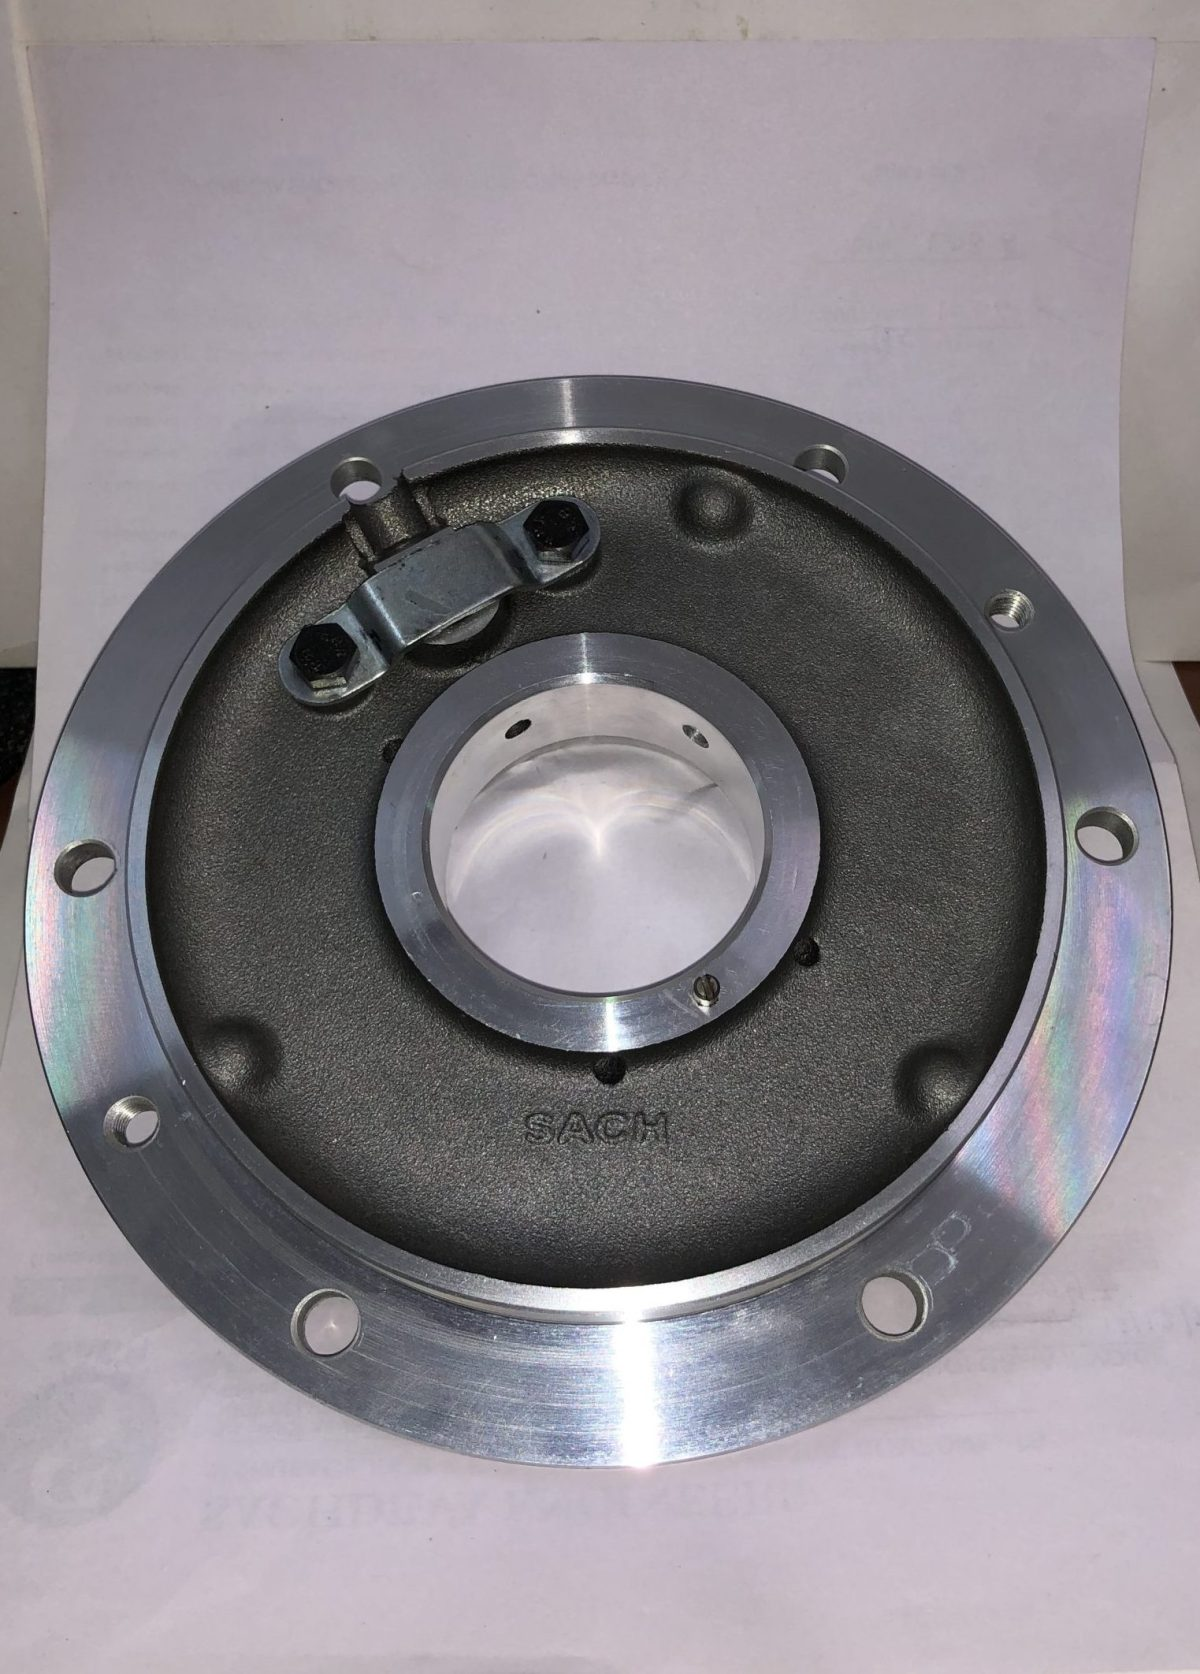 crank support plate Lombardini 3LD 510 , LDA 510 Greaves Ape Piaggio. ROCKER ARM COVER 3LD 510 , LDA 510 FOR lombardini 3LD 510 and 3LD  450 single cylinder Diesel engine . Lombardini lda 510 , 3ld 510. Greaves , ape piaggio. 6LD 360 6LD 325